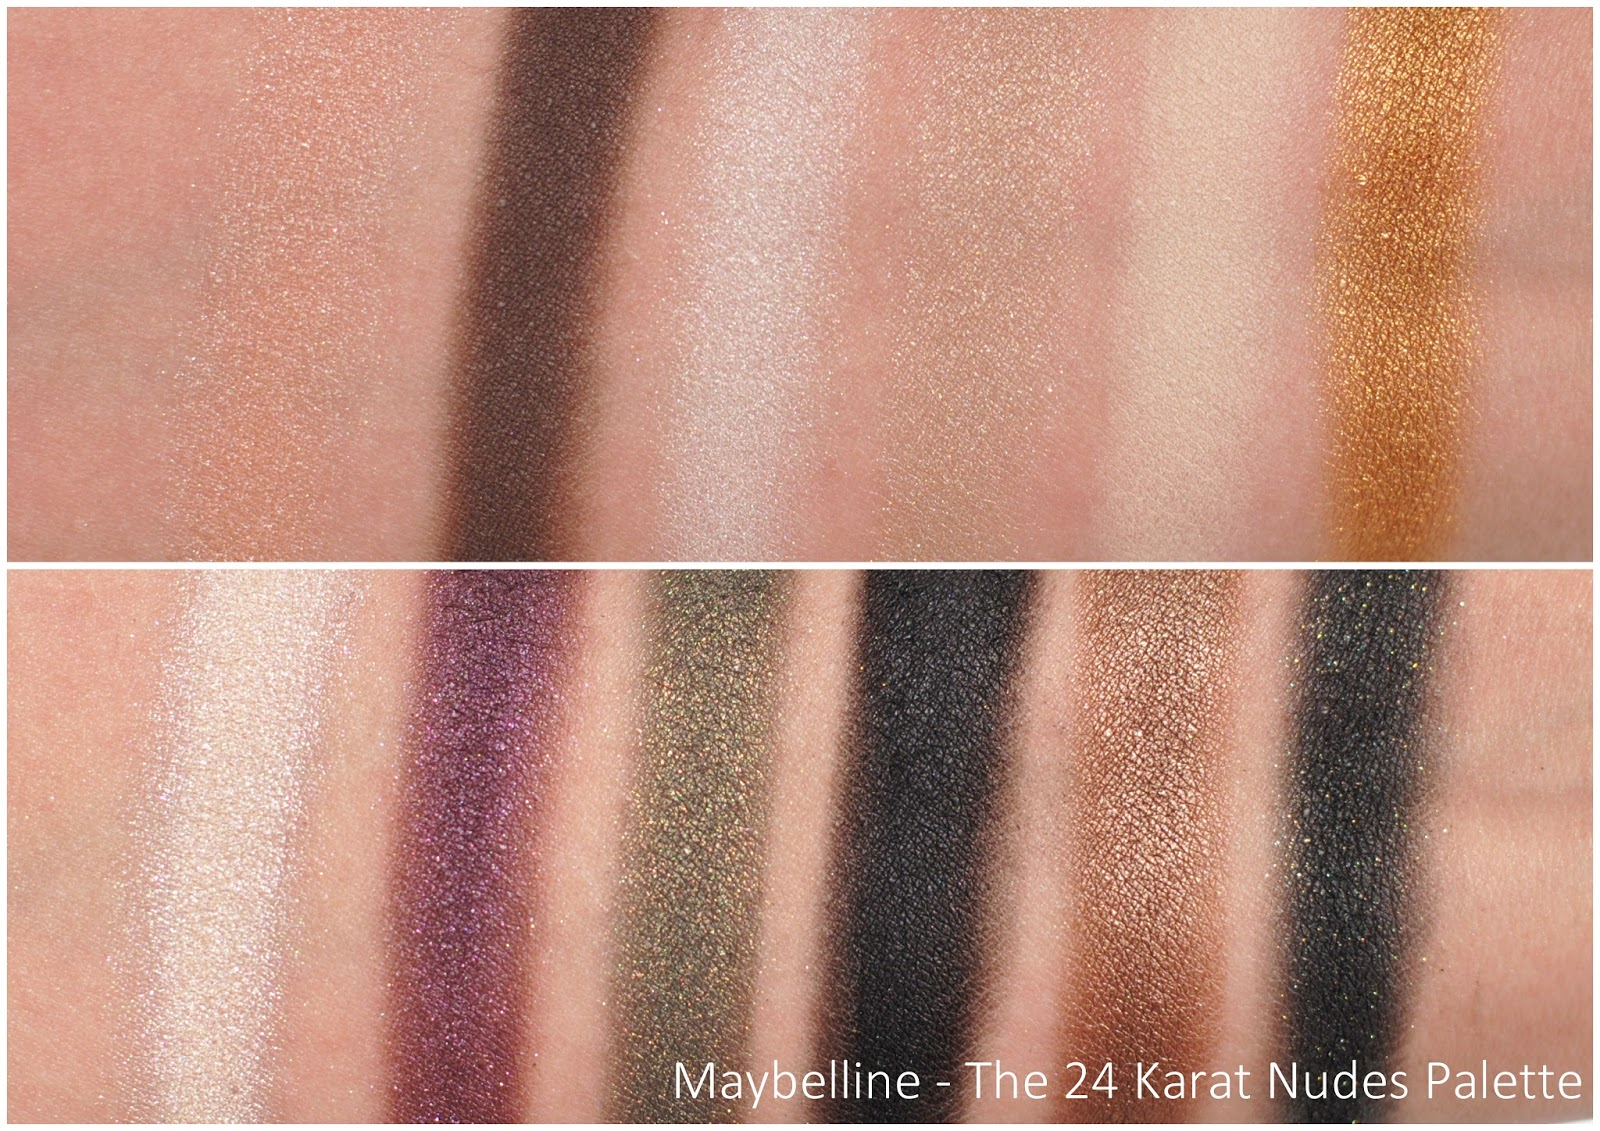 Maybelline 24 Karat Nudes review